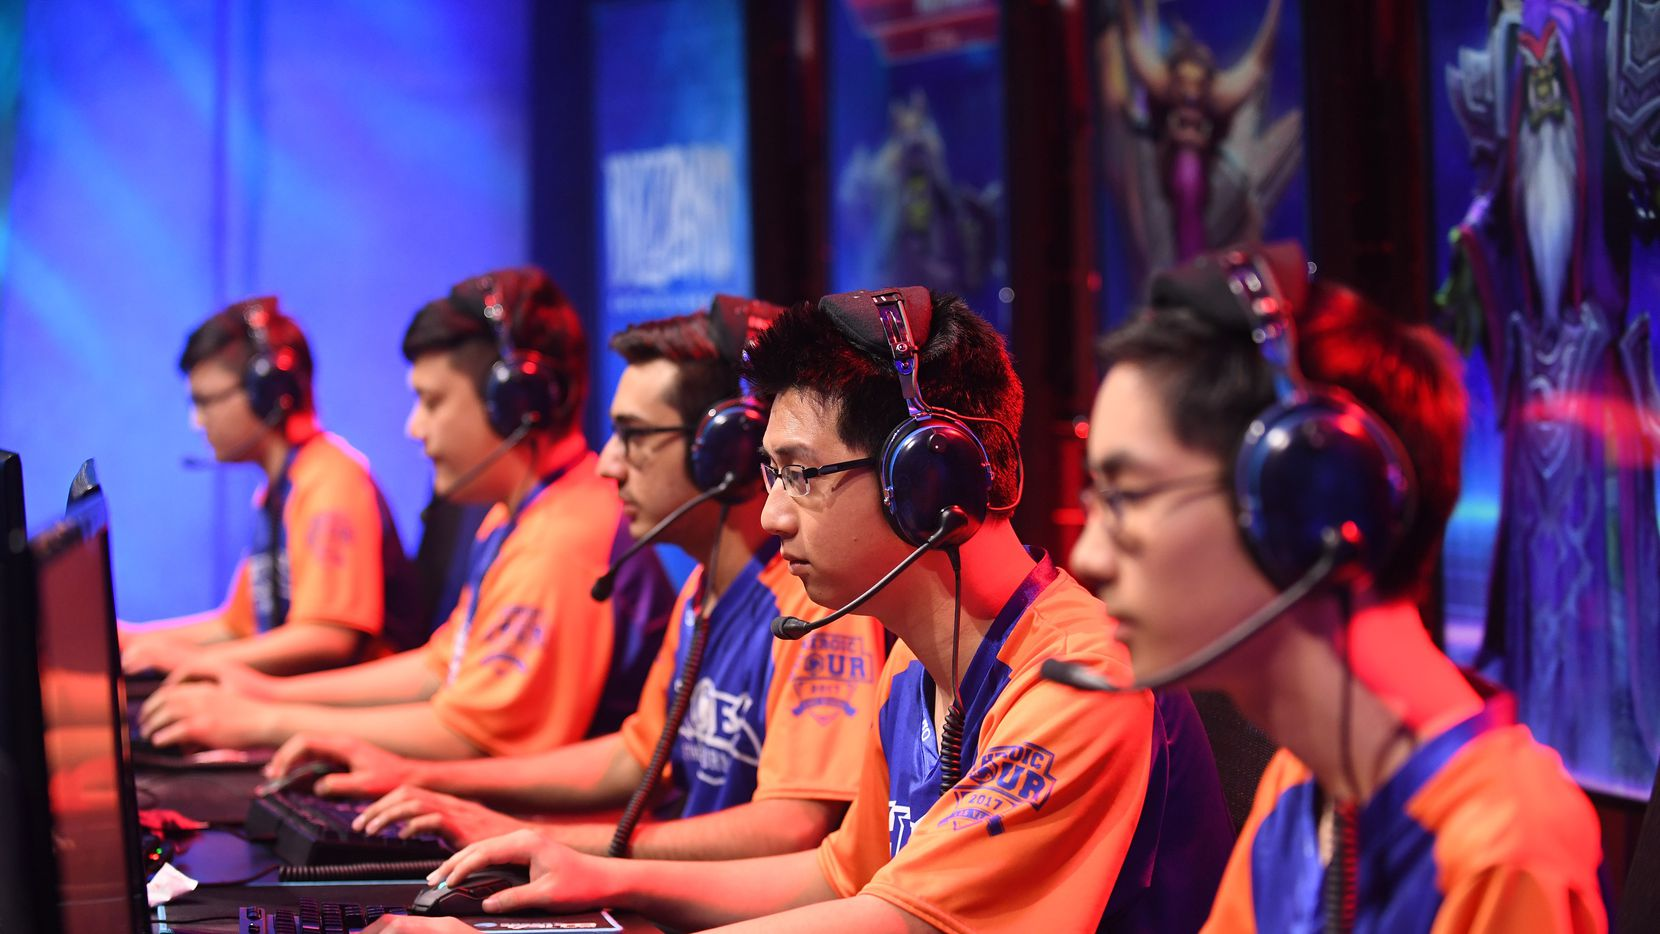 UT Arlington's 'Heroes of the Storm' esports team.